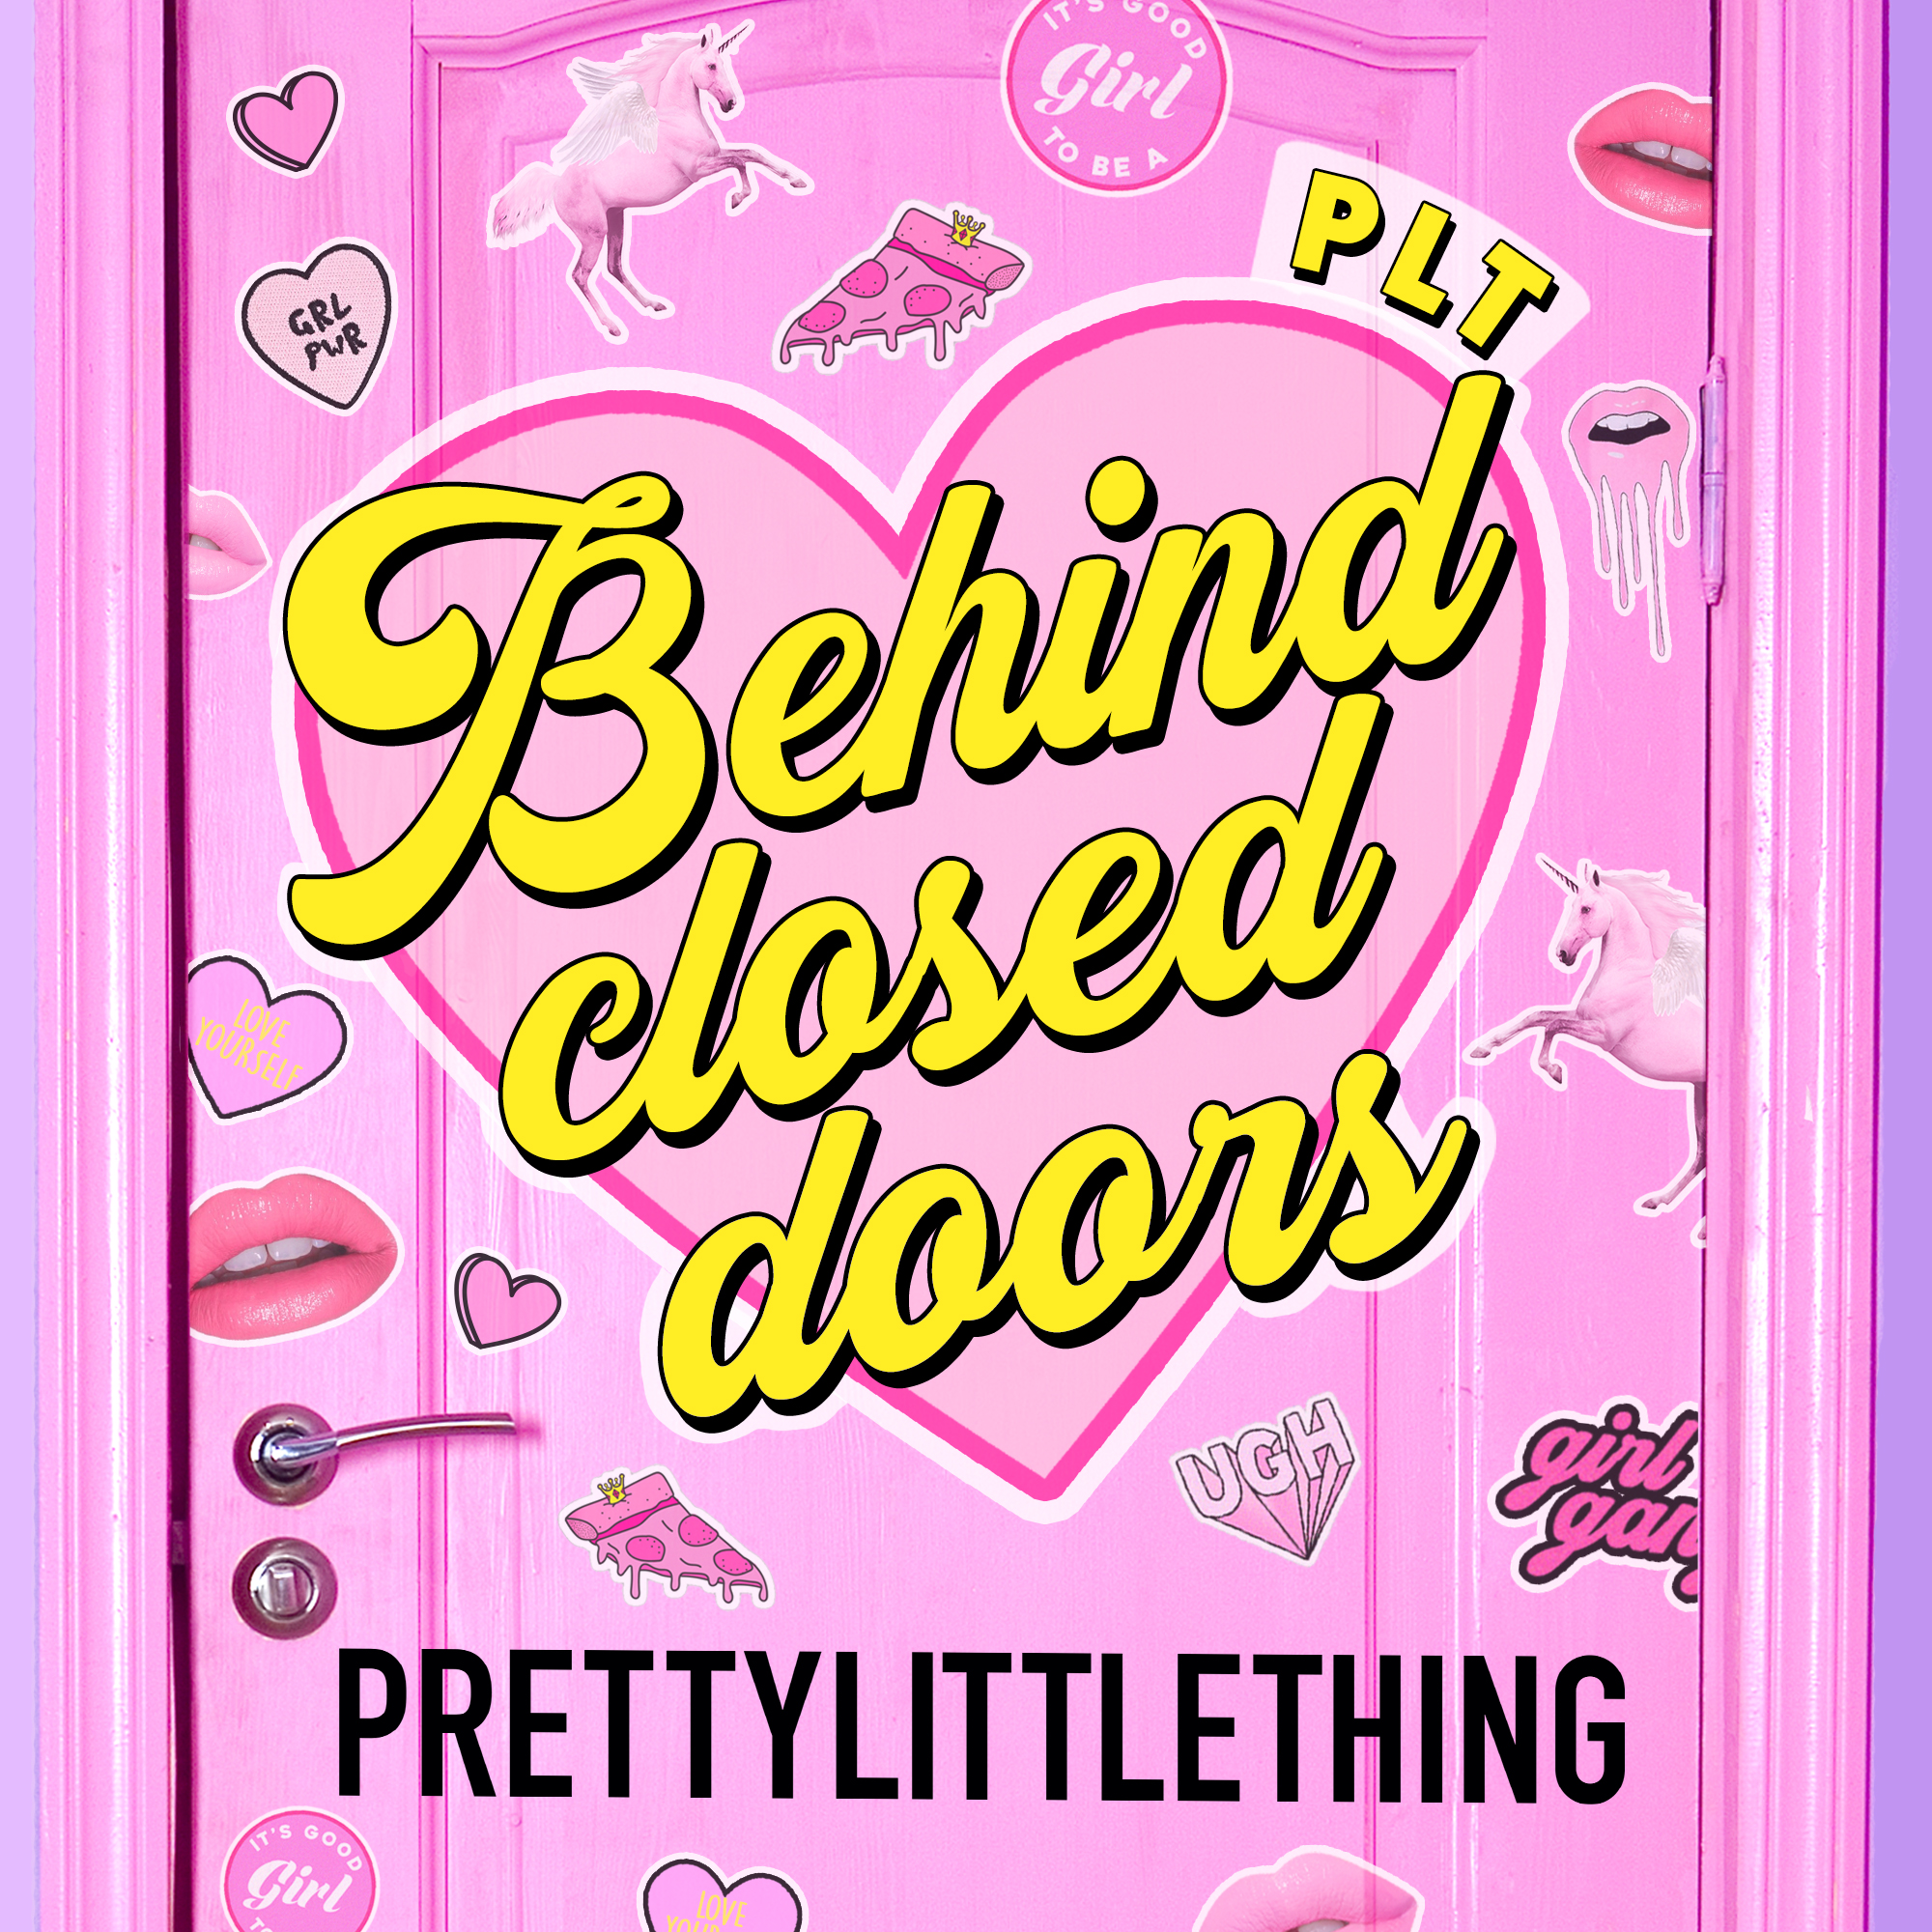 Image result for plt behind closed doors